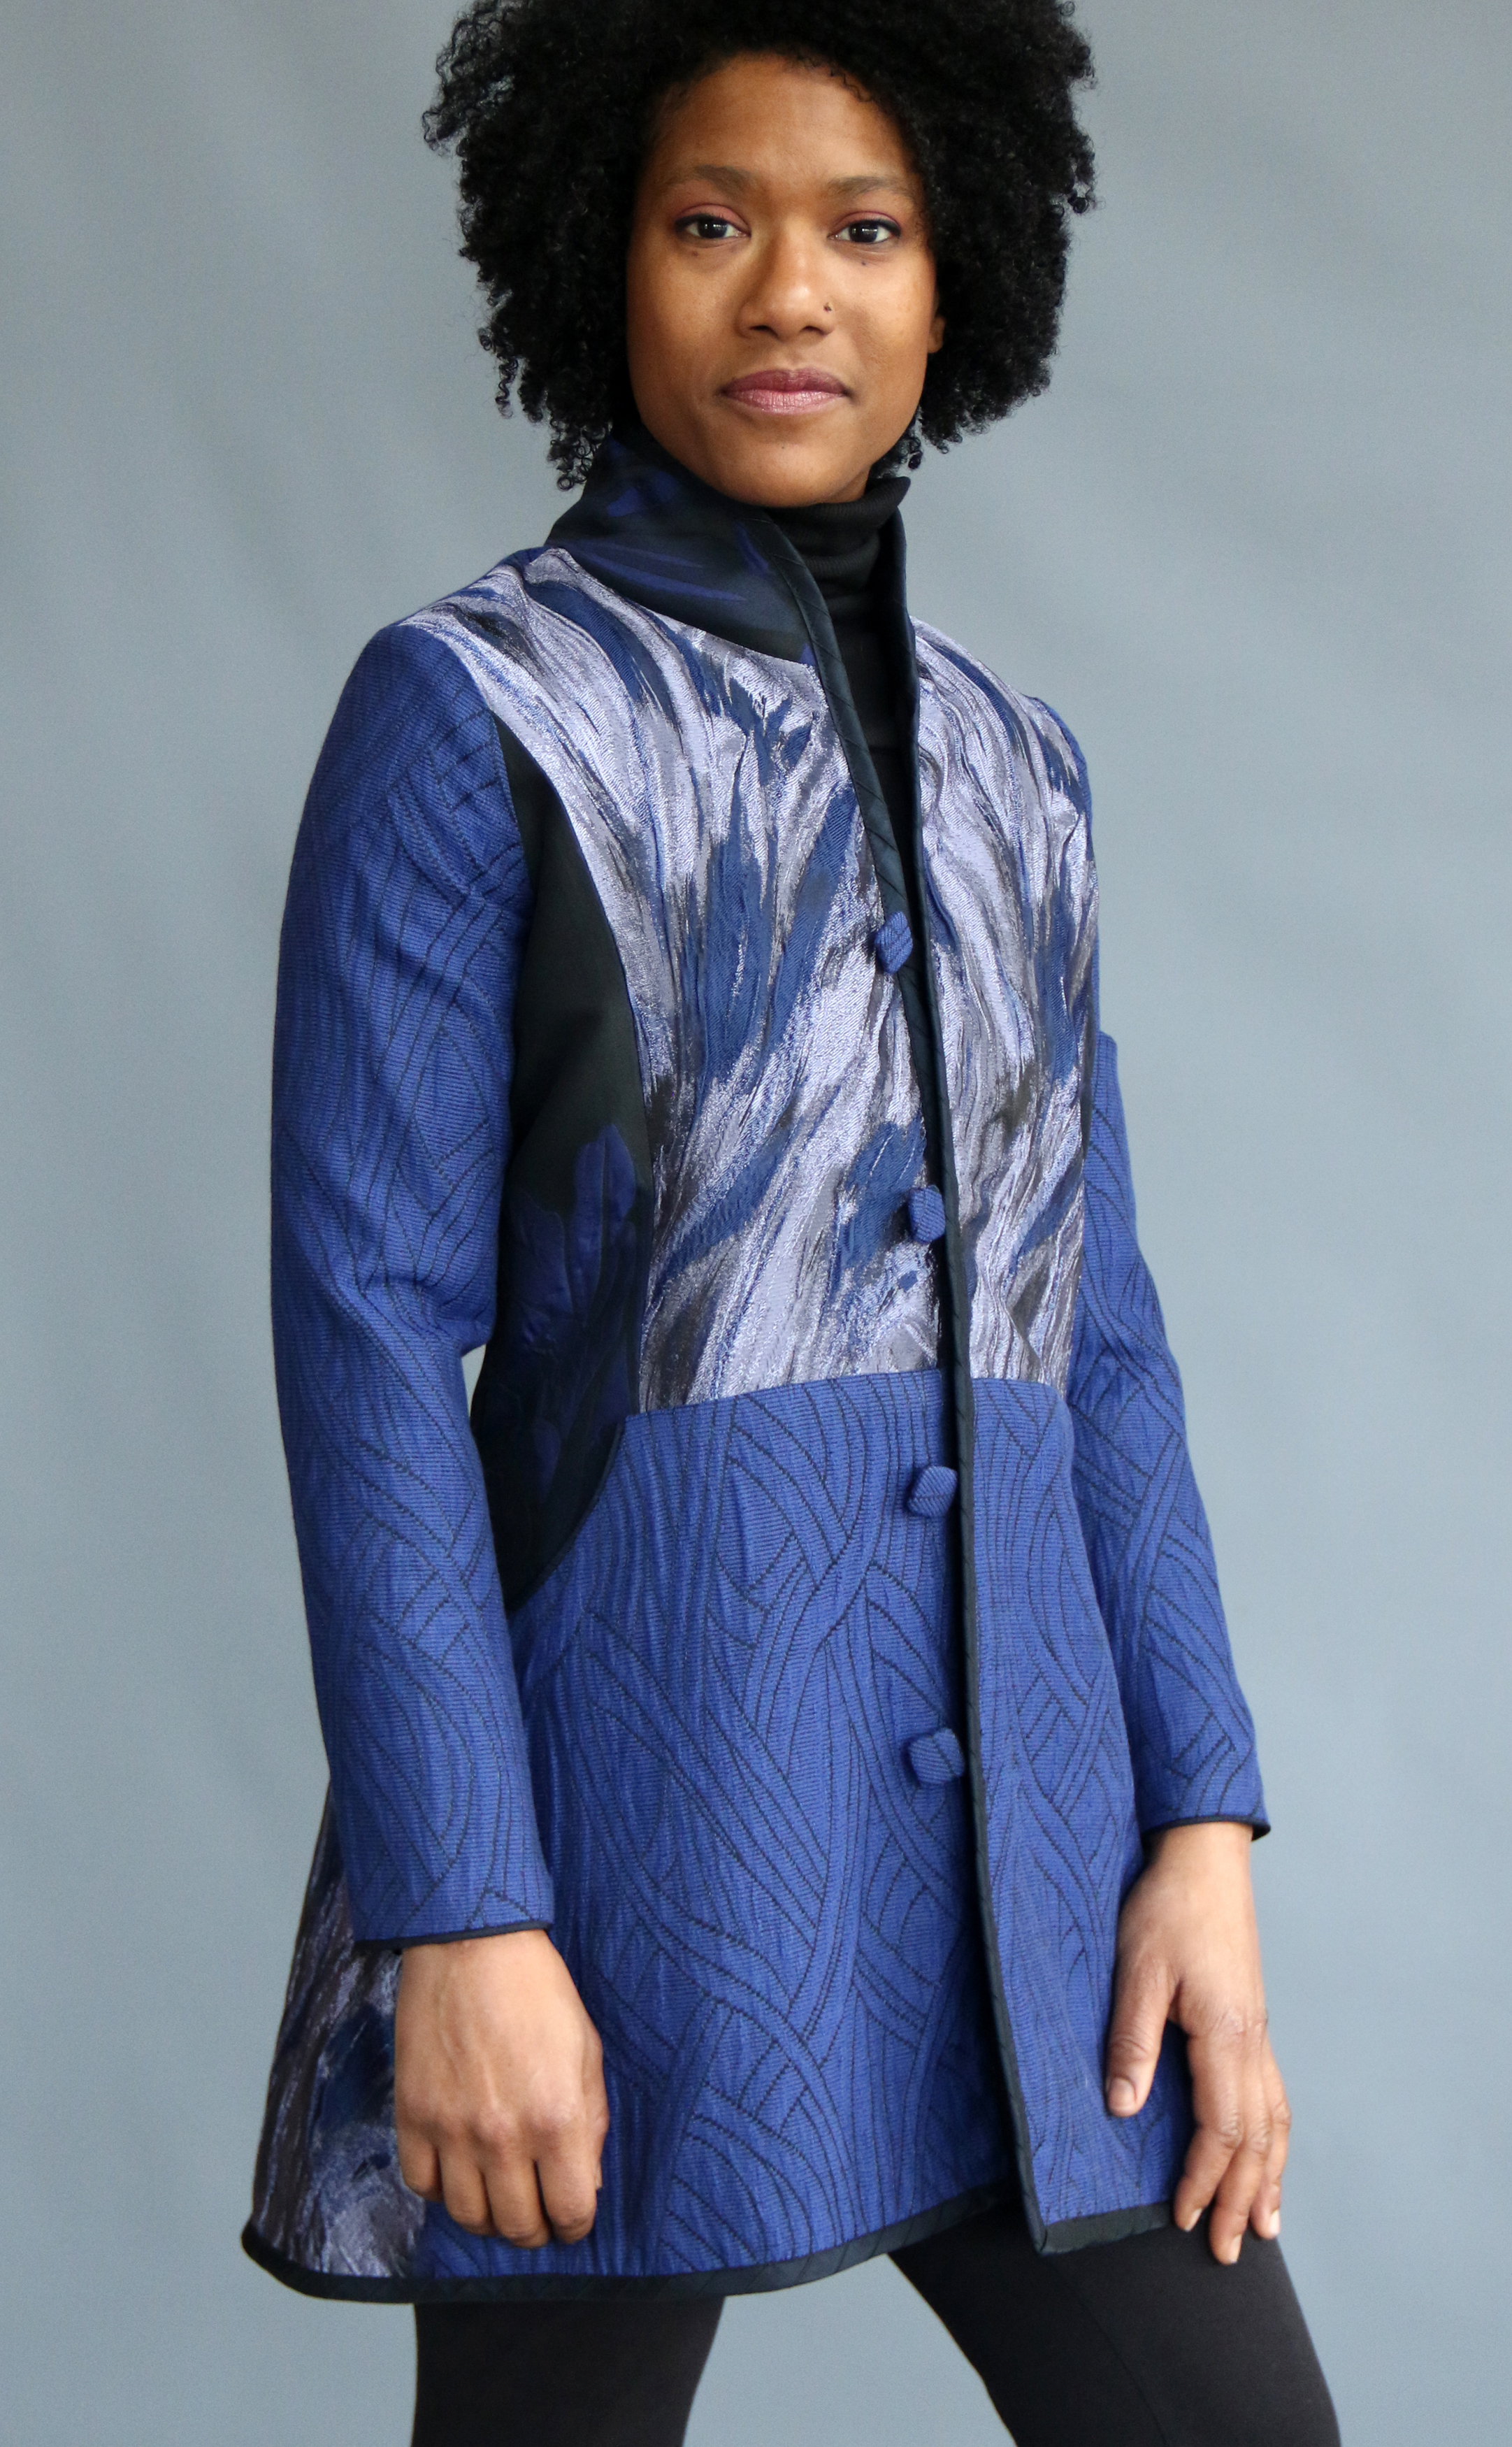 tailored coat sewn from blue patterned silk and cotton fabrics